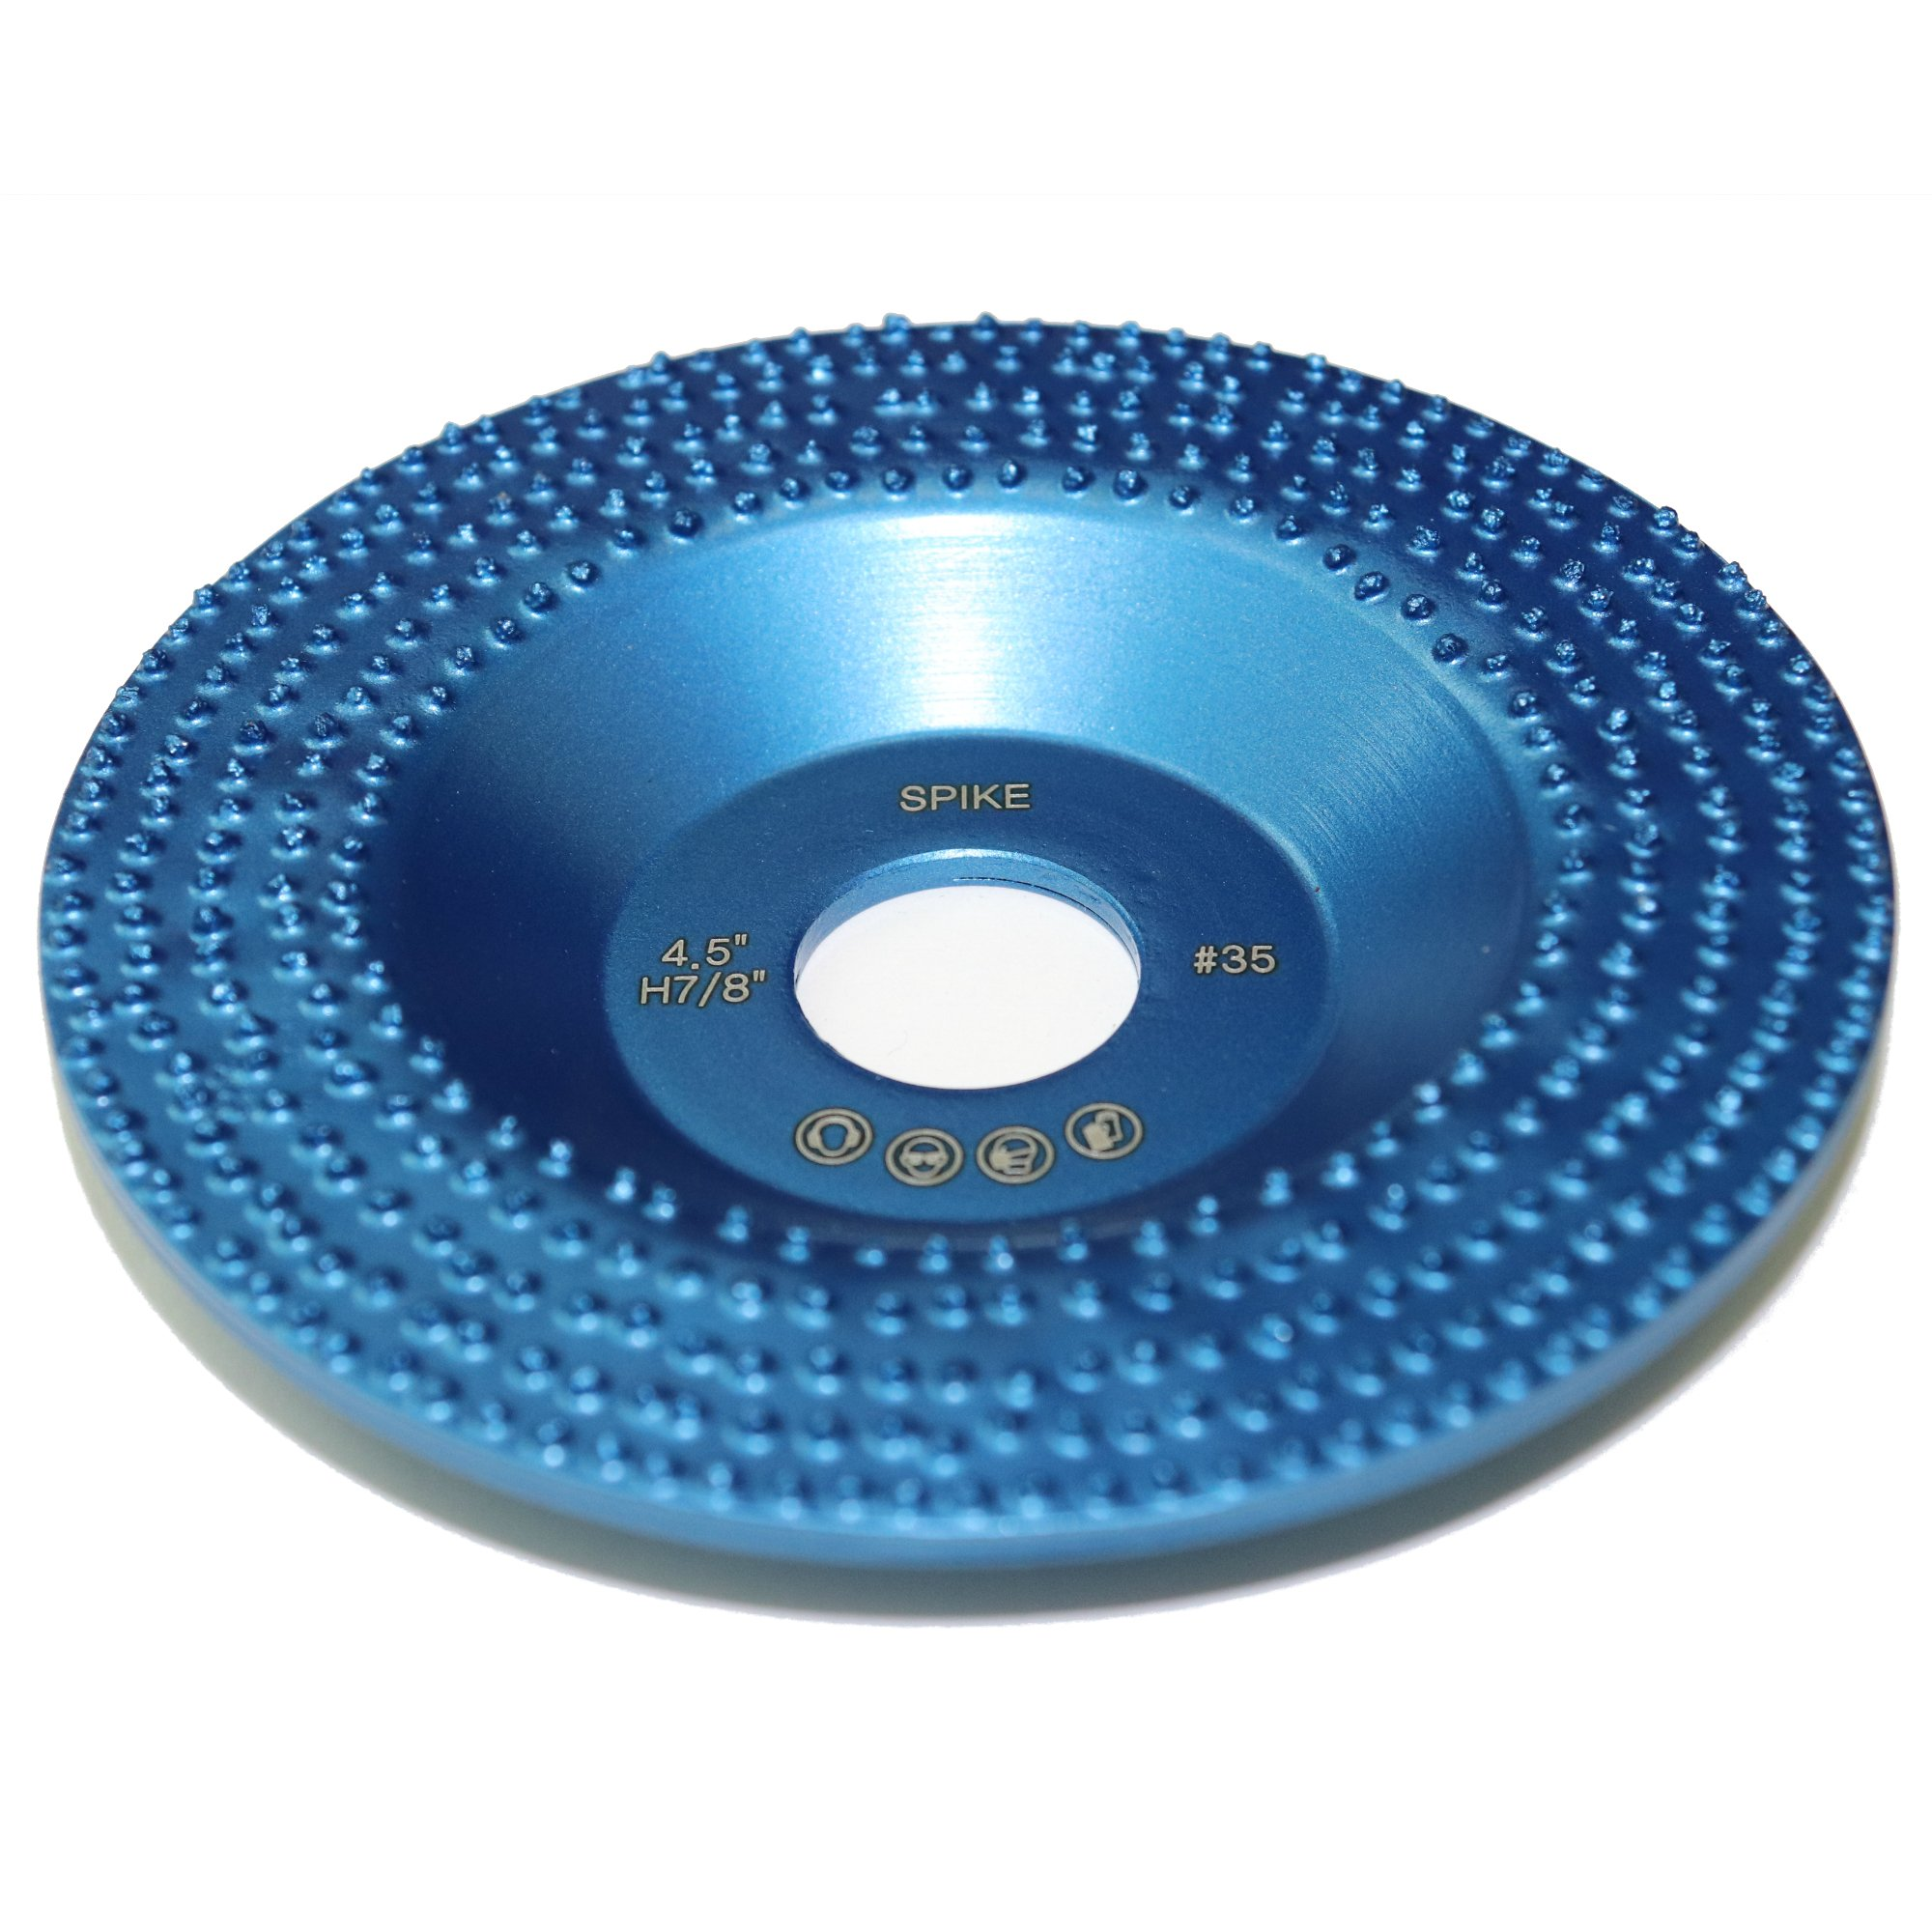 Spike 4.5'' Diamond Cup Removing Disc Wheel with RCD Newest Technology & Rubber Cushioned Body (Spike, 4.5'', 5.4 oz Very Light)